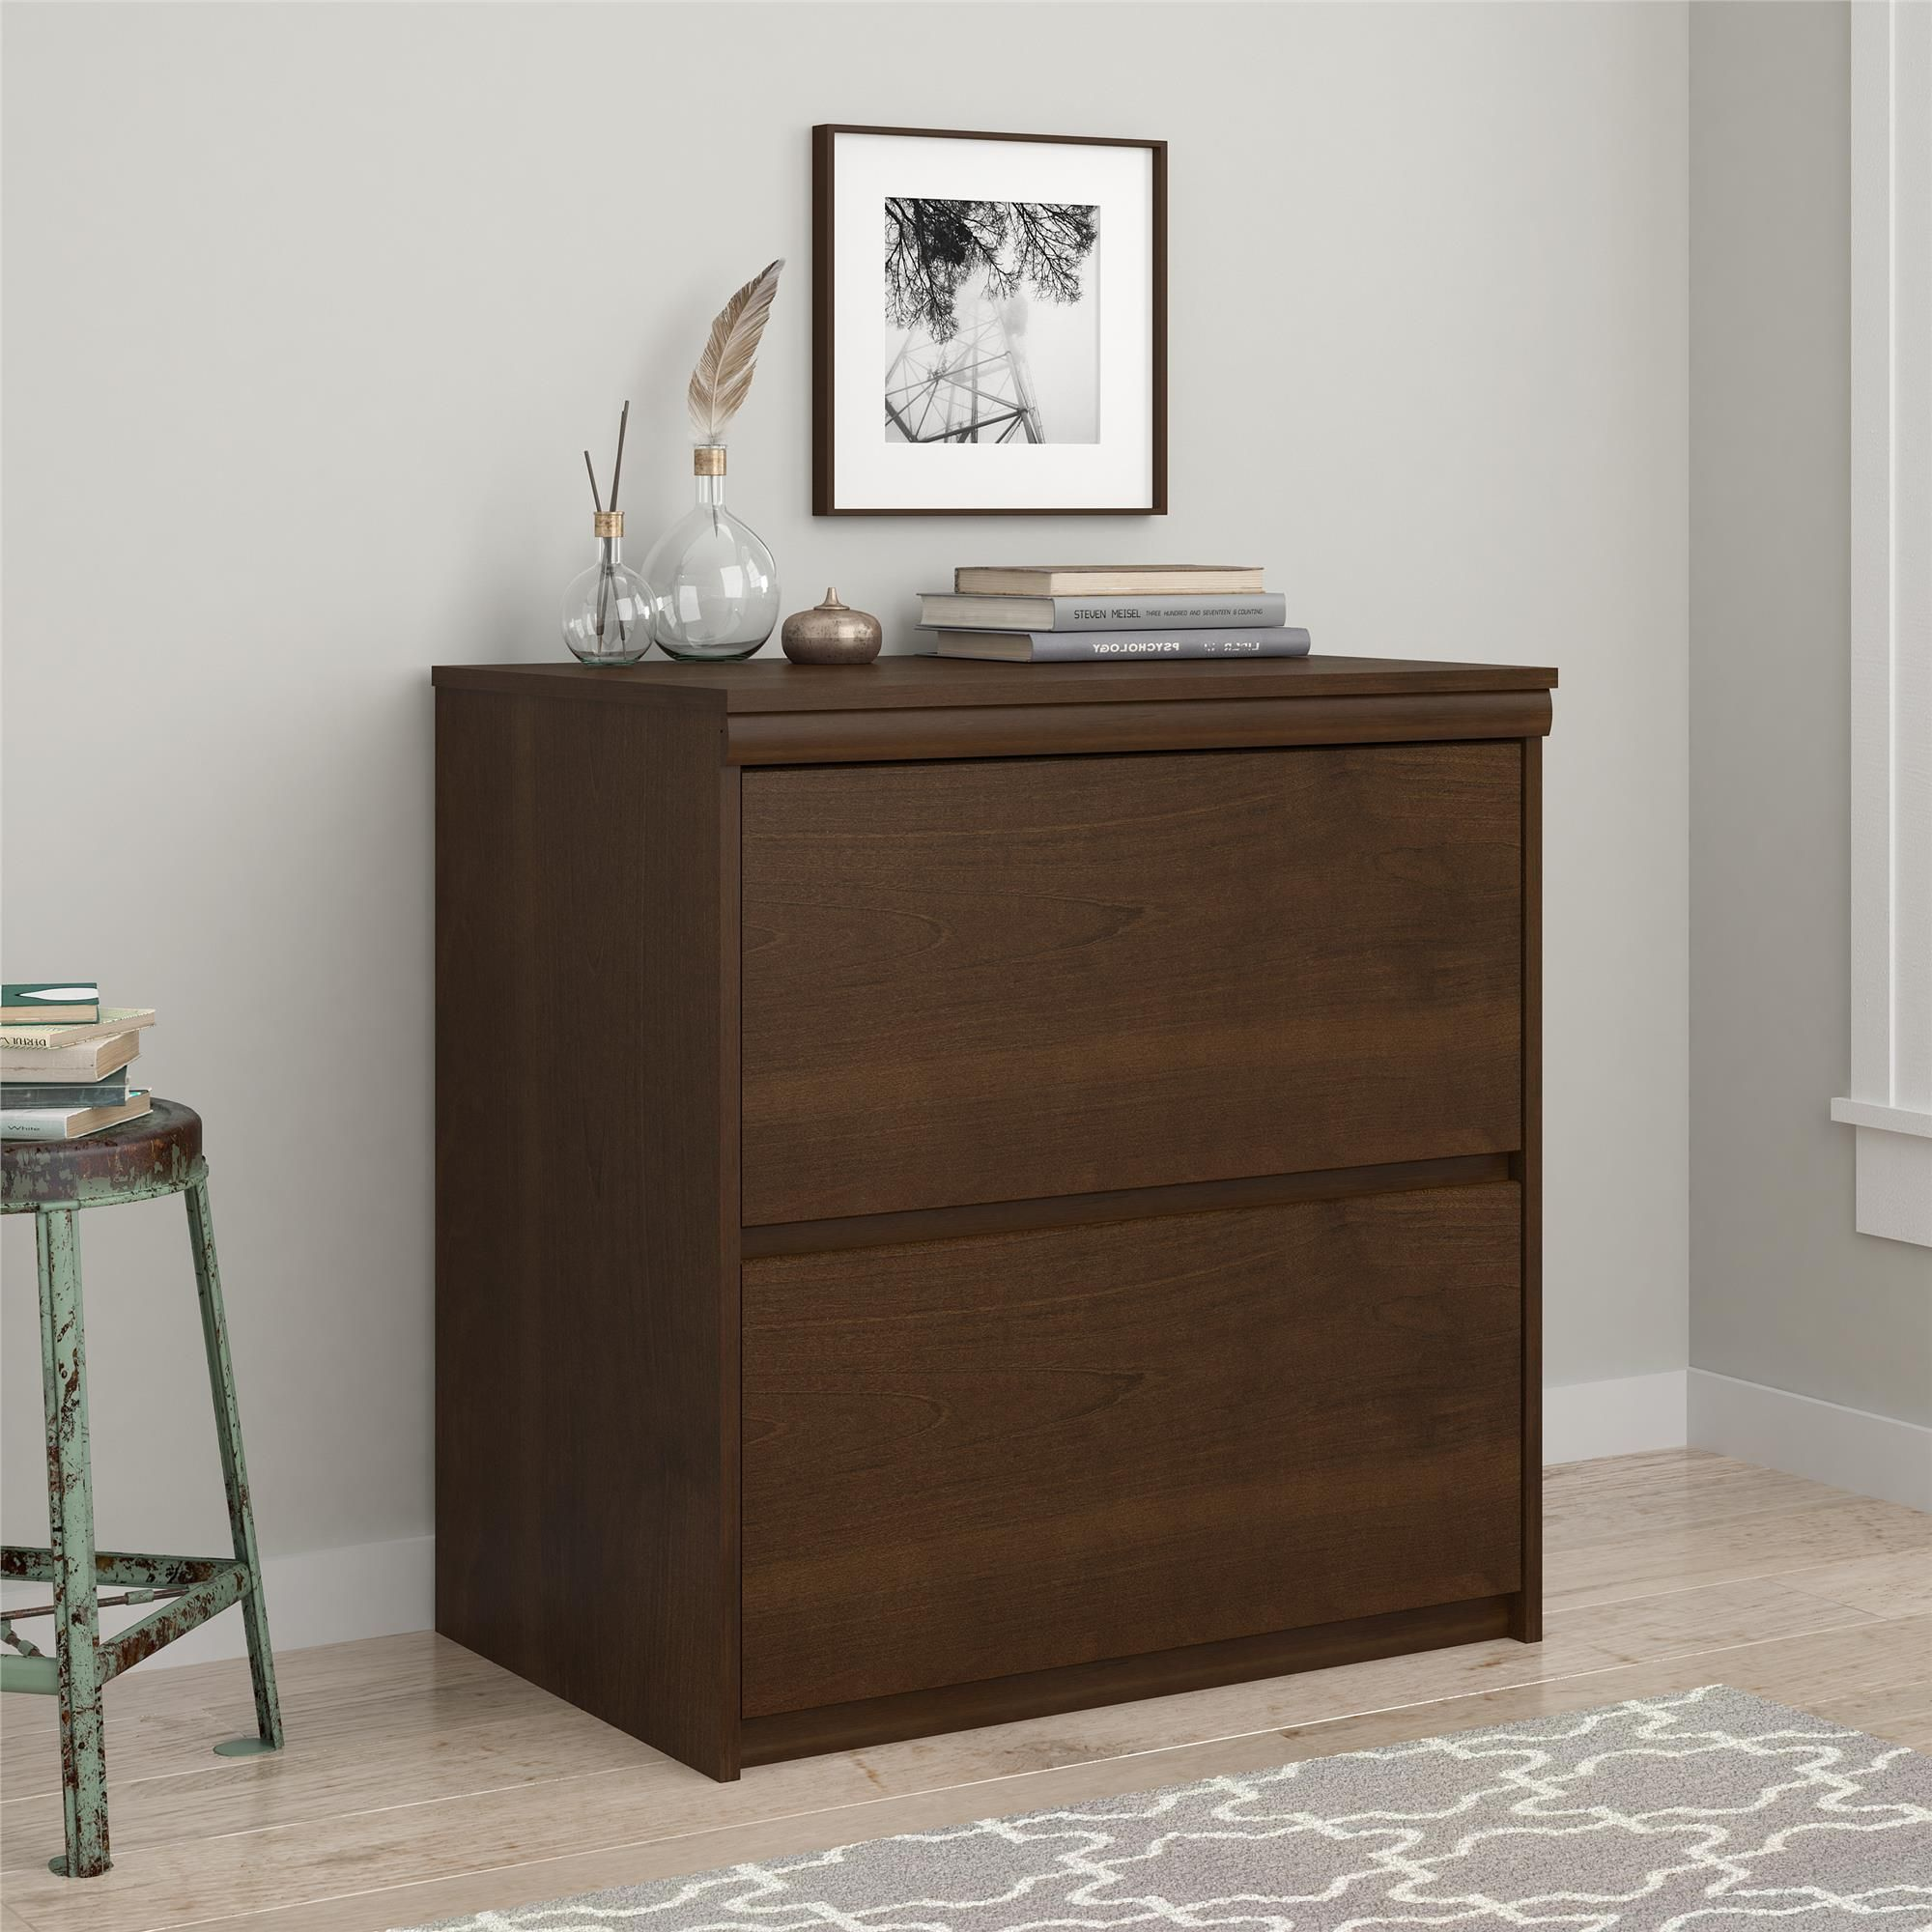 plete your office space with the Ameriwood Home Presley Lateral